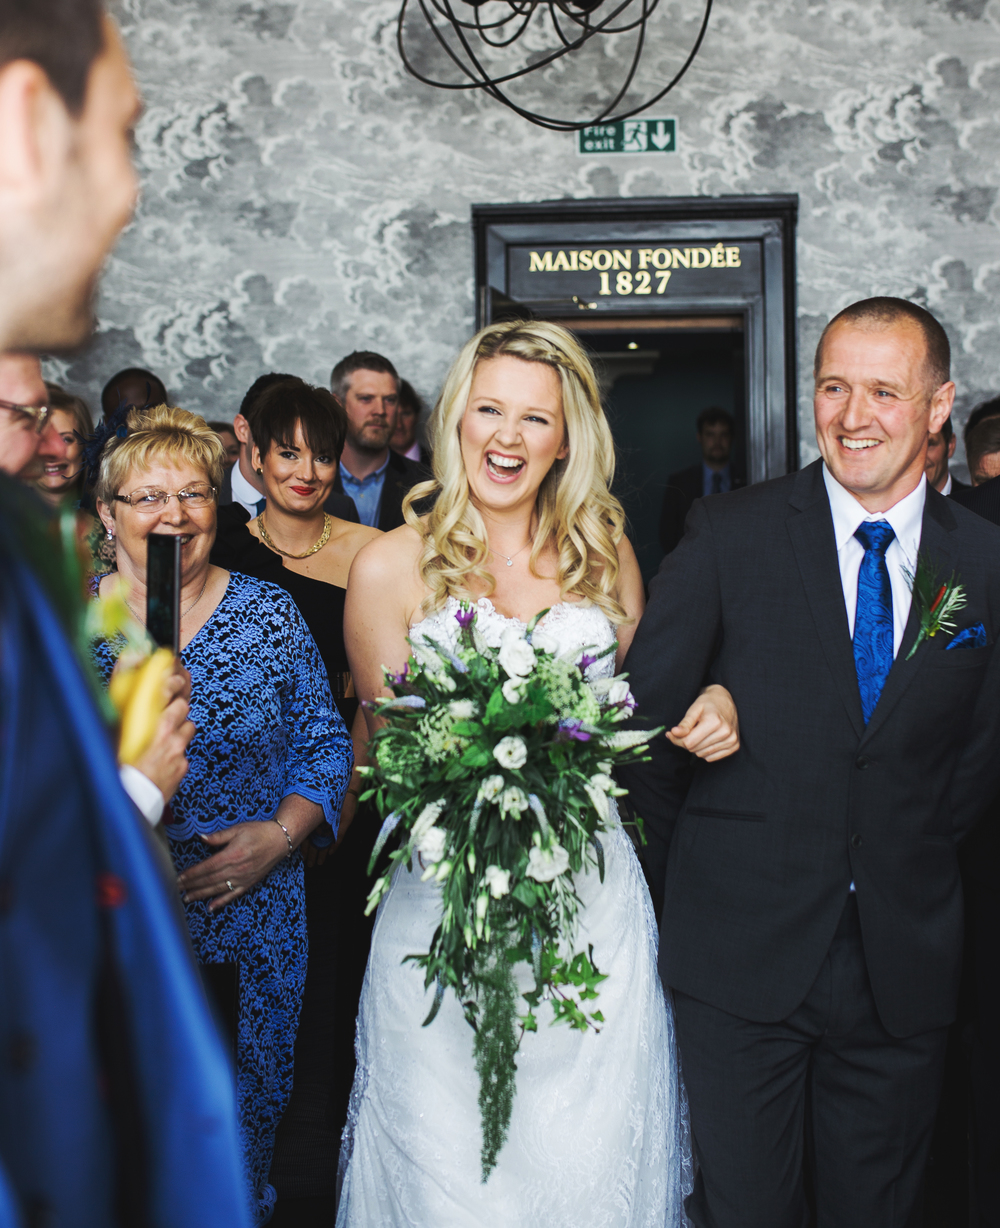 Smiles from the bride as she walks down the aisle.